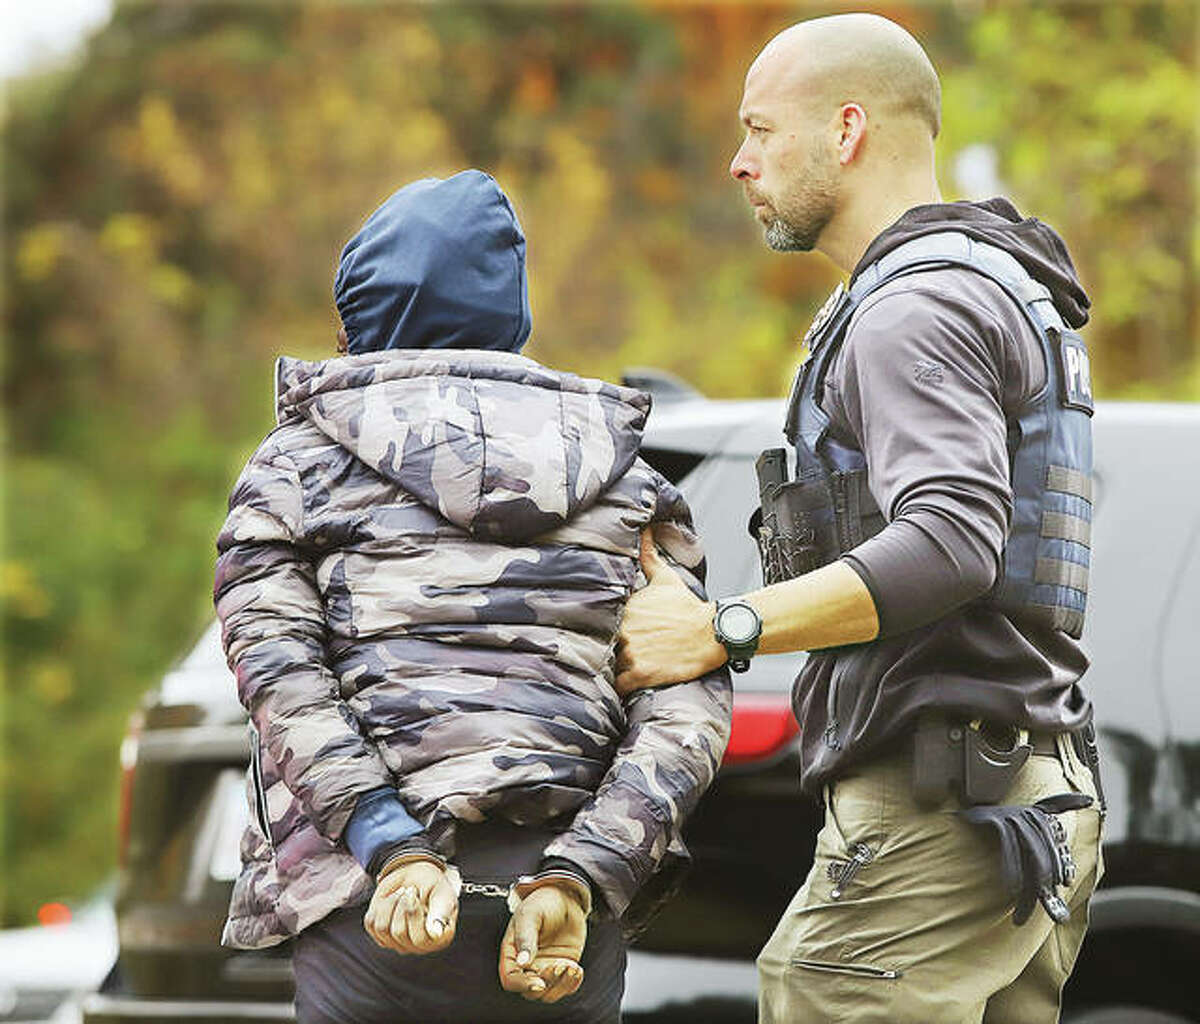 A Wood River Police officer escorts one of four subjects taken into custody to a waiting police car on the highway. Police also had a white Hyundai towed to their station for processing.